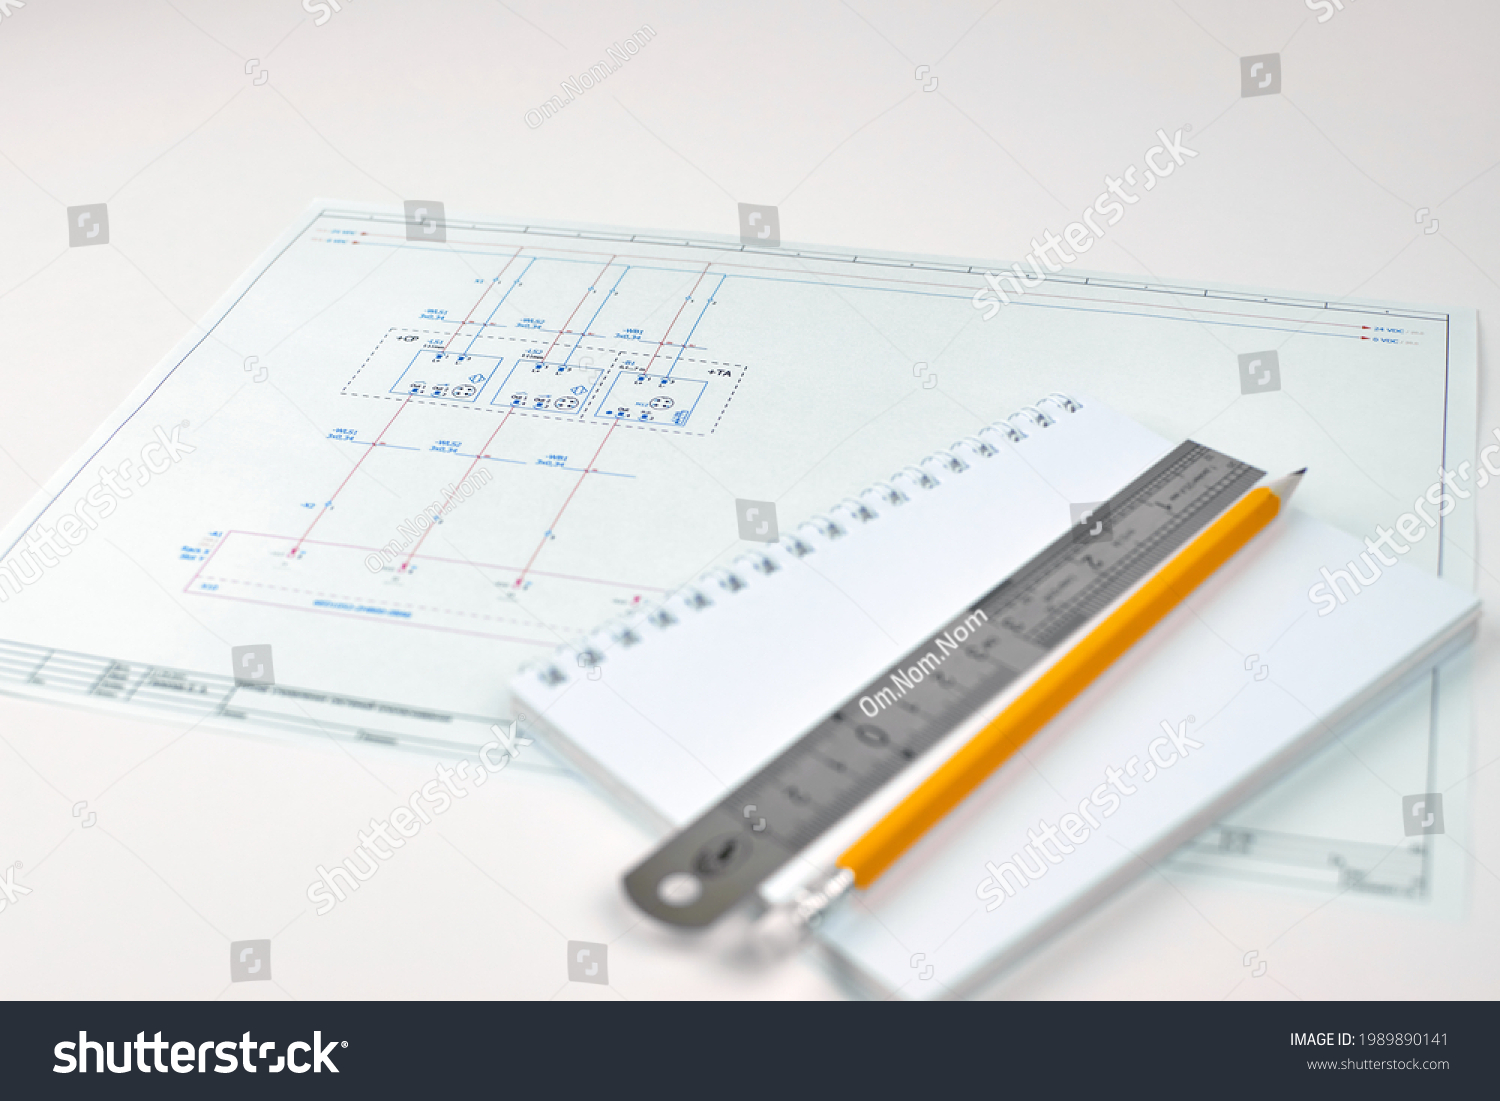 Printed circuit diagram. Engineer's drawing, close-up. Wiring diagram of electrical sensors. Design concept, electronics and engineering. Wiring diagram, close-up. Engineer's workplace. #1989890141